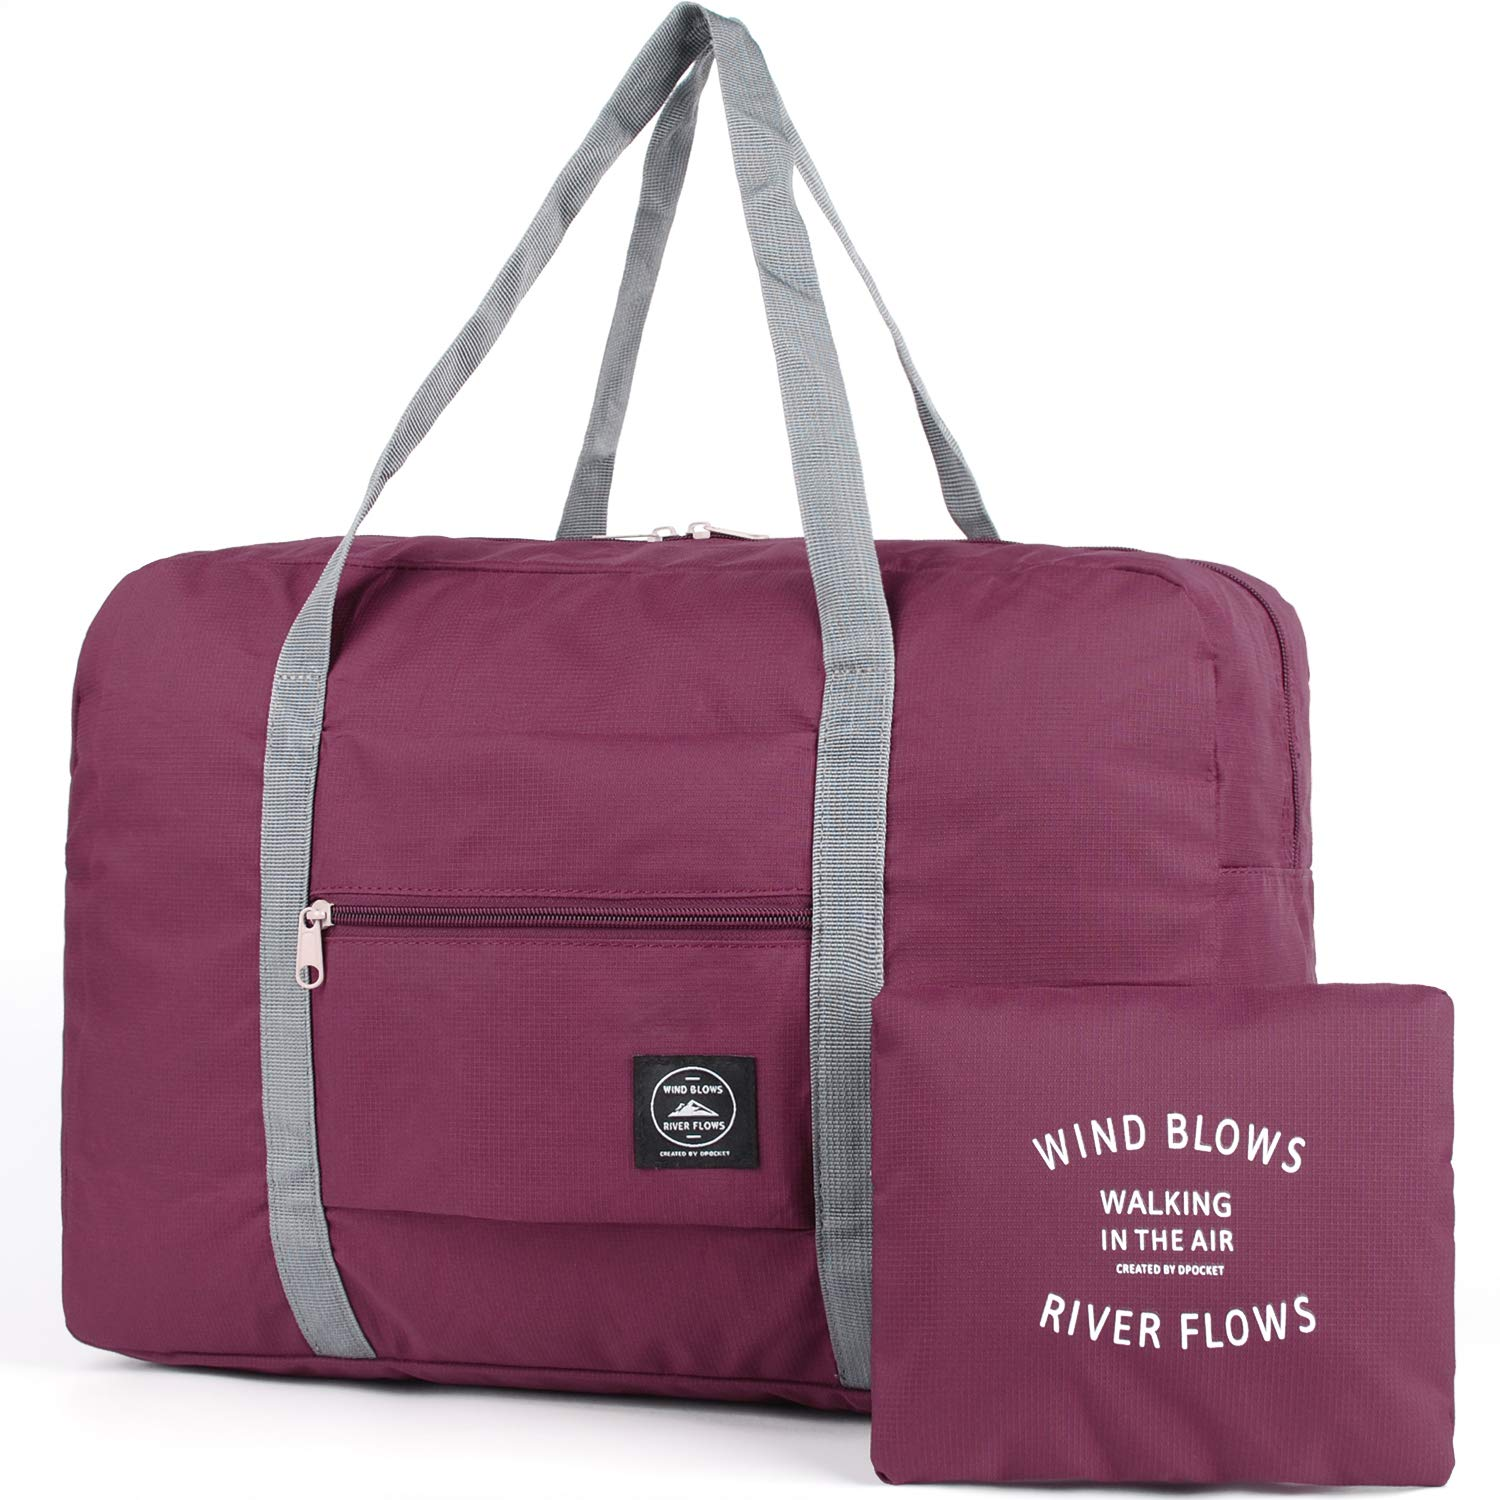 Packable Travel Duffel Bag Tote Carry on Luggage Weekender Overnight Sport  Duffle for Kids Girls Women  Amazon.co.uk  Sports   Outdoors 3766a5063d